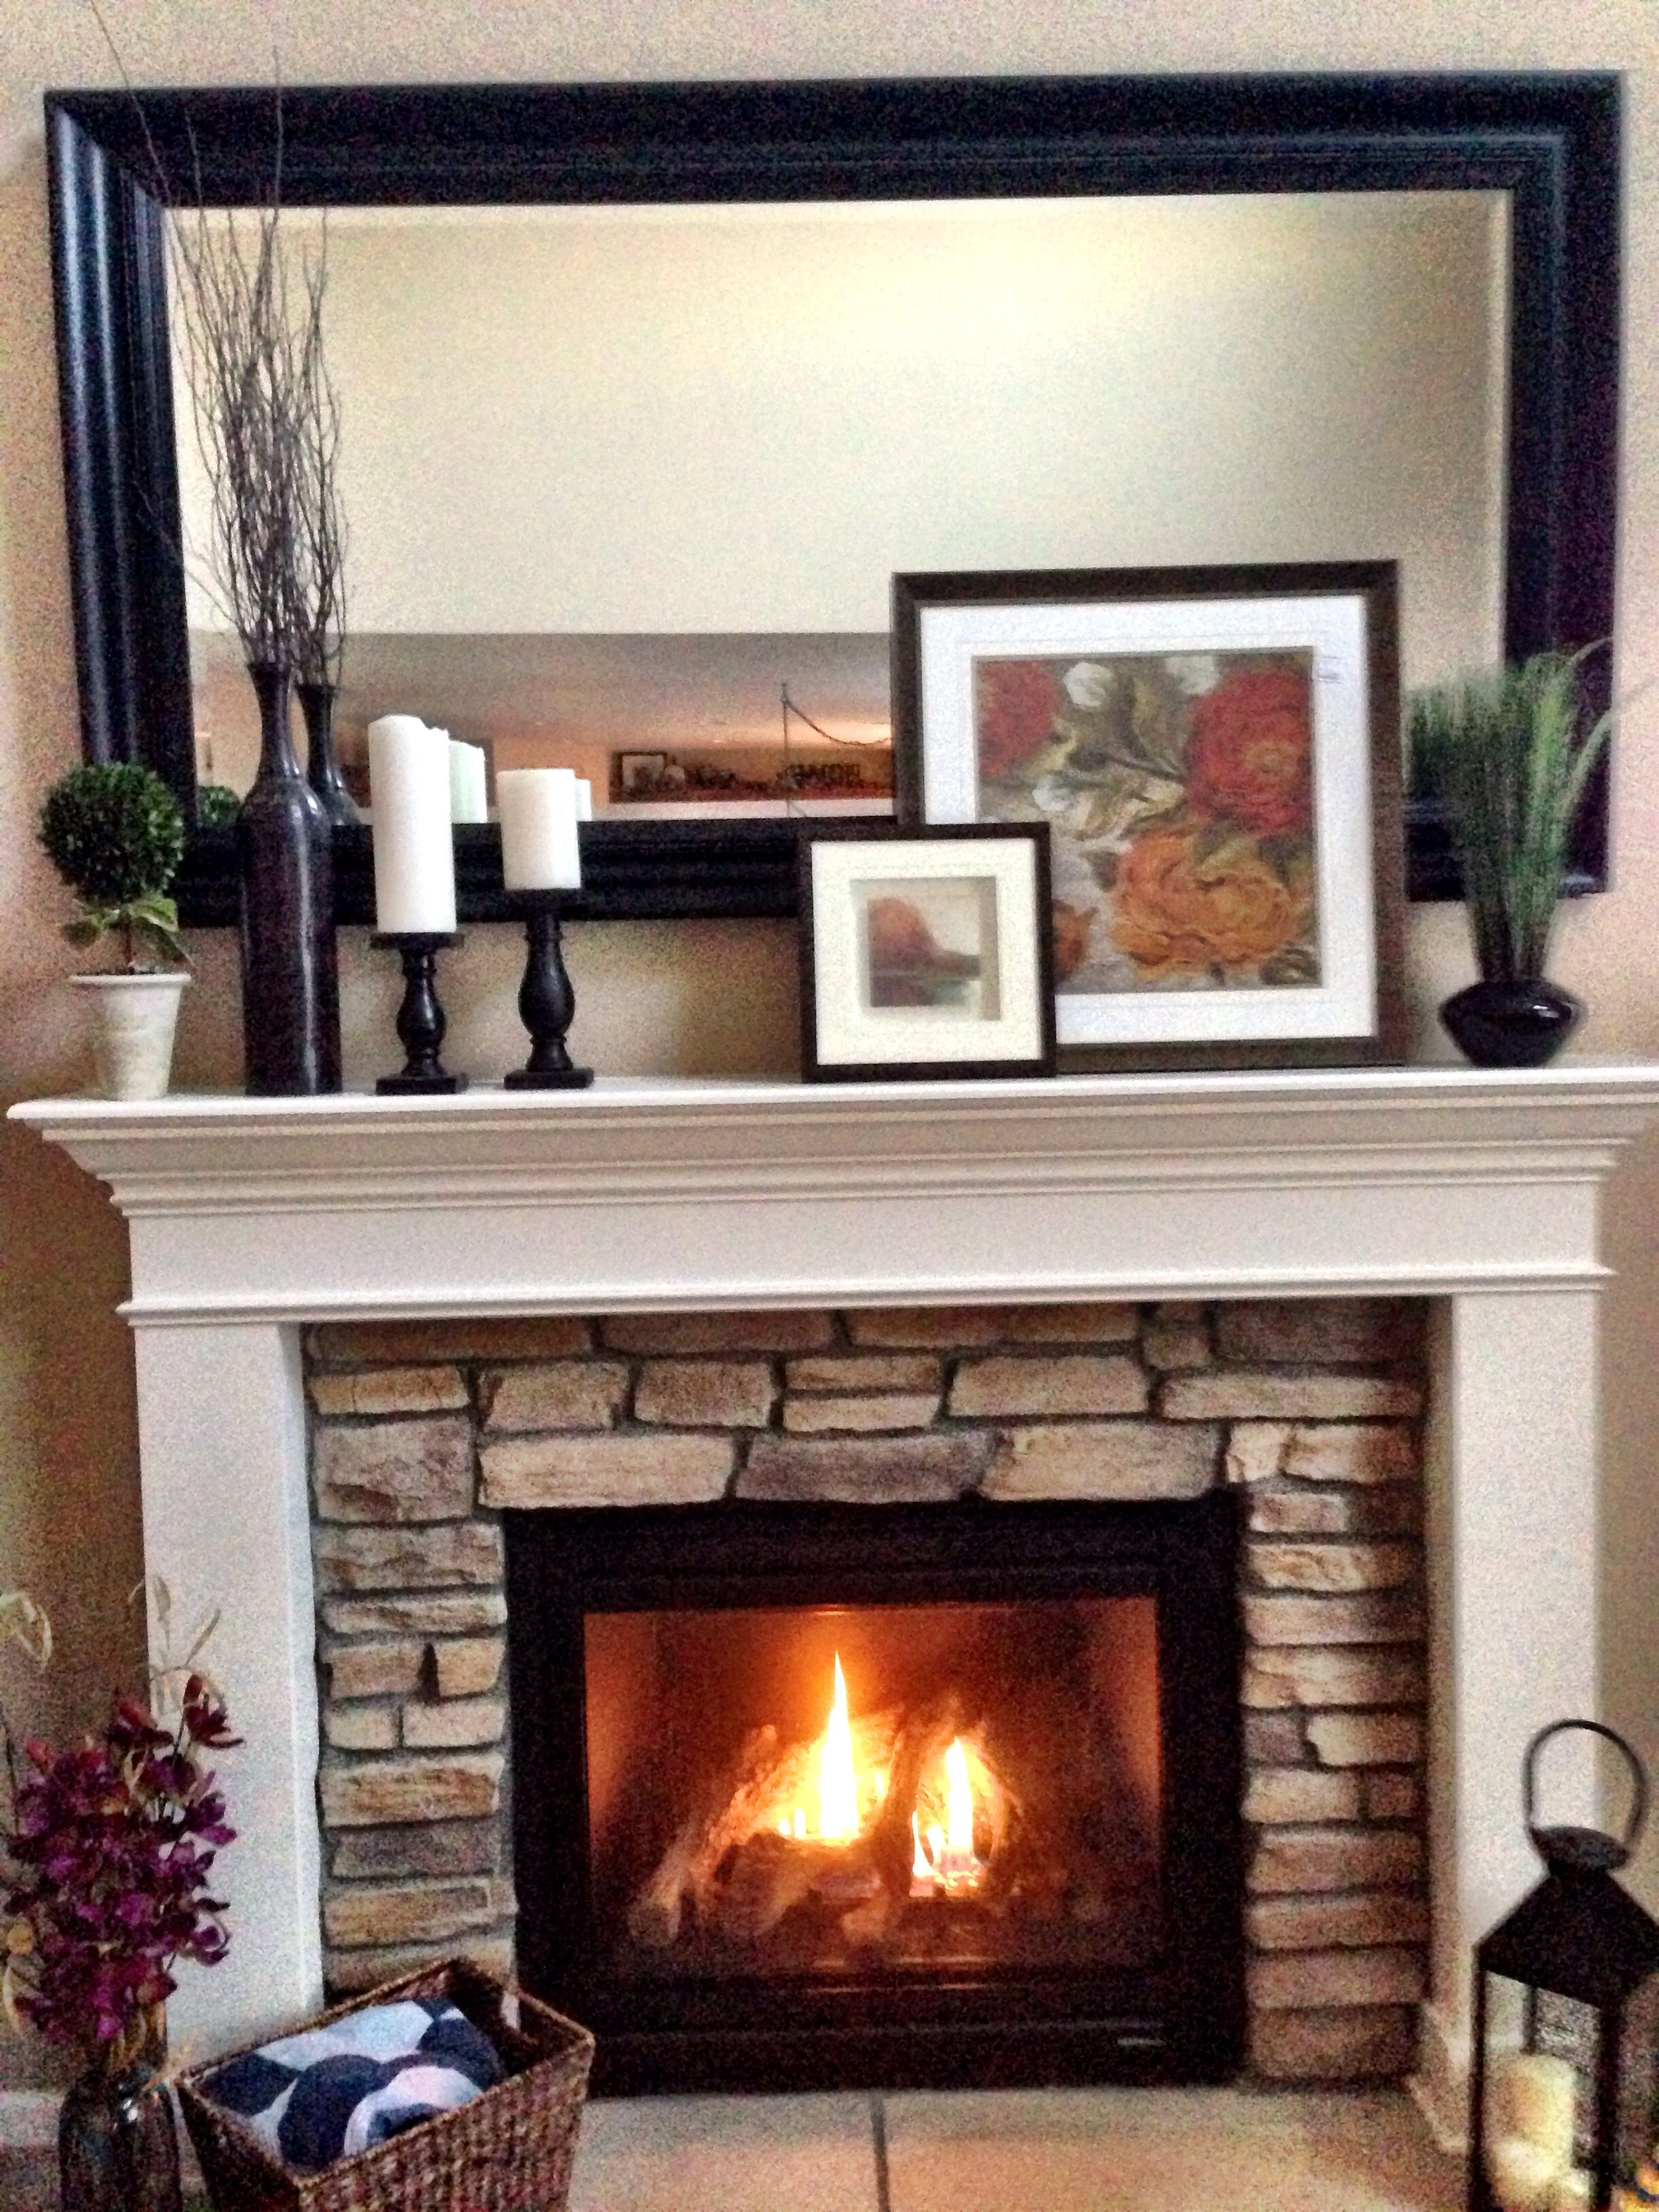 Mantelpiece Ideas Mantel Decorating Layering C2design For The Home Home